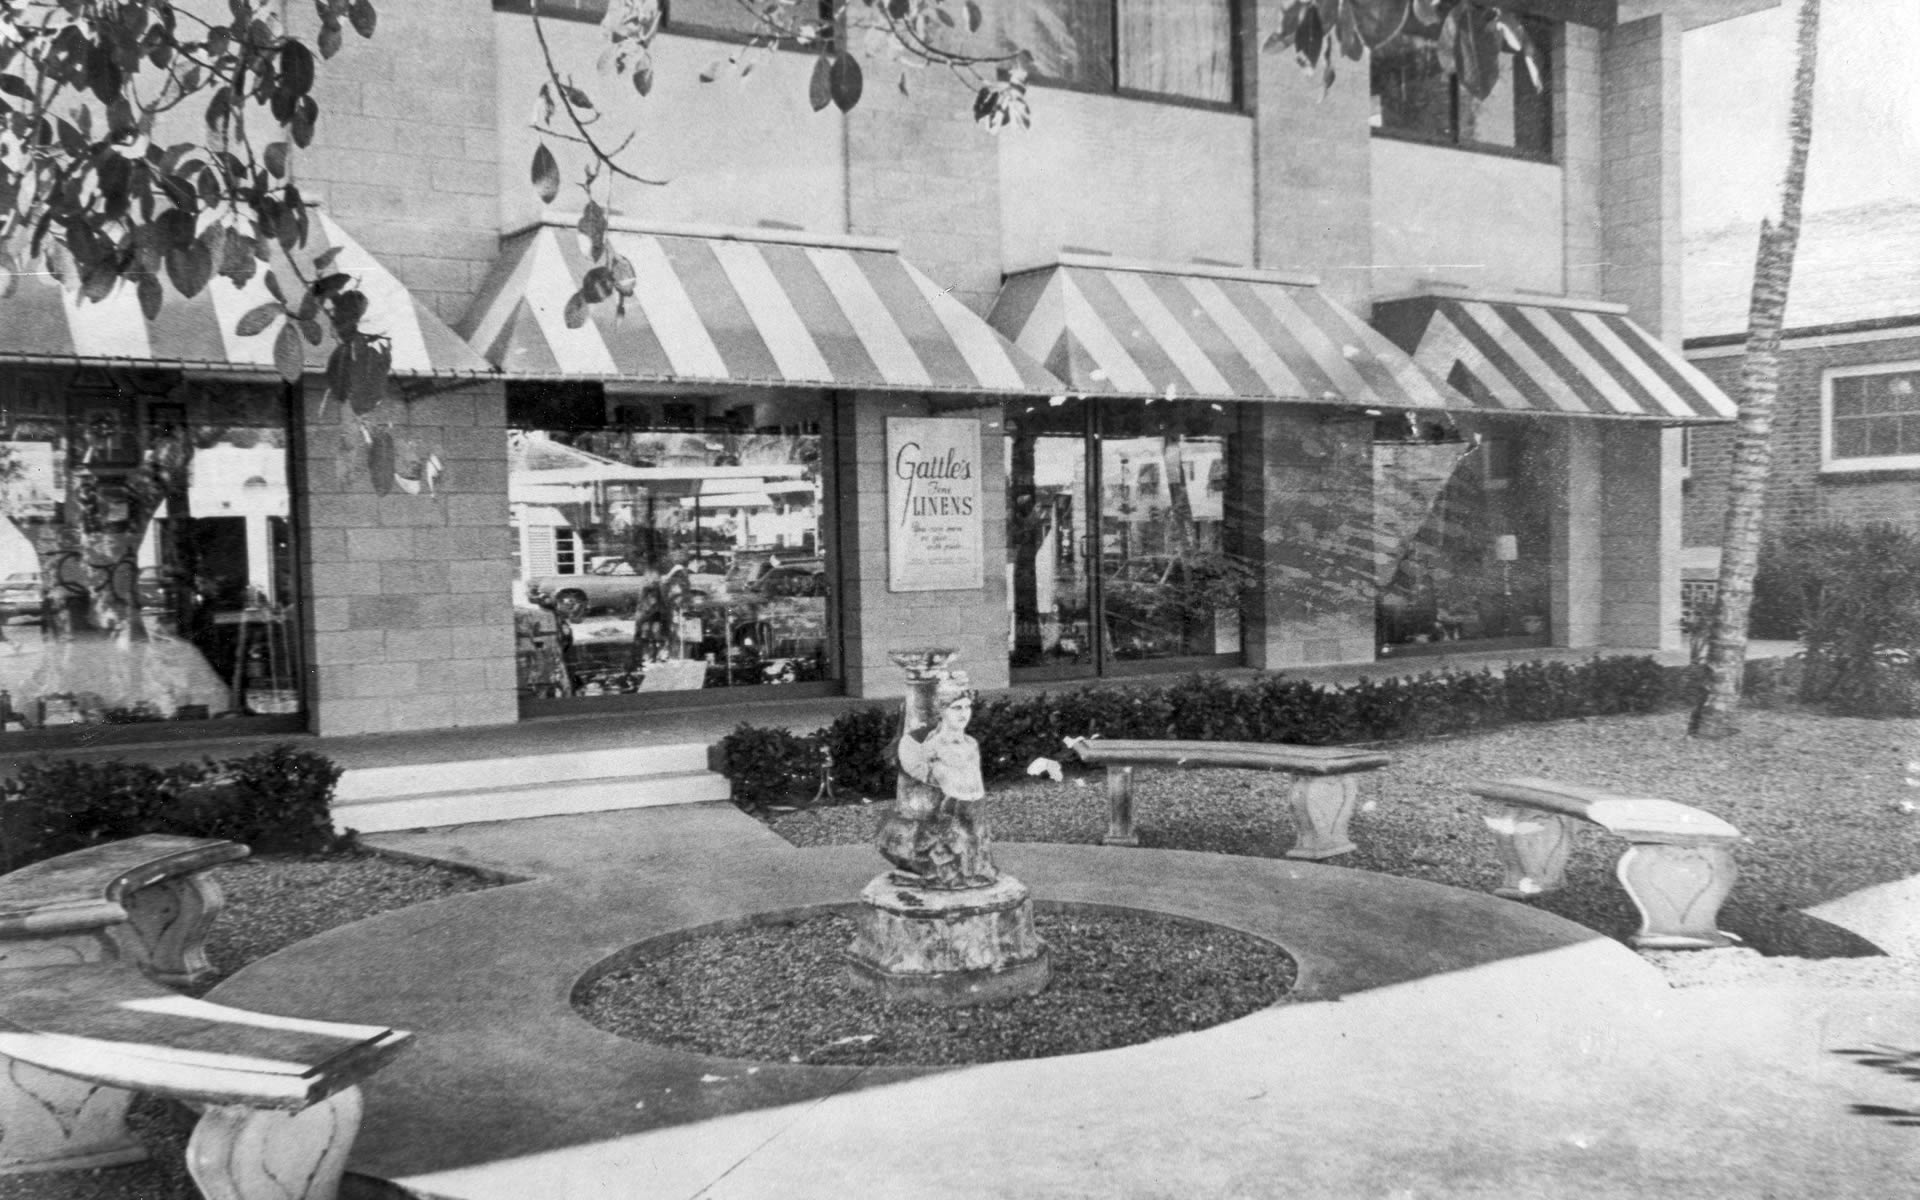 The Fleischmann Building with Gattles in the location it has occupied for over fifty years. The foreground is now different with the Fleischmann Fountain with was brought from the formal gardens of their country house as the centerpiece in memory of their contributions to Naples.